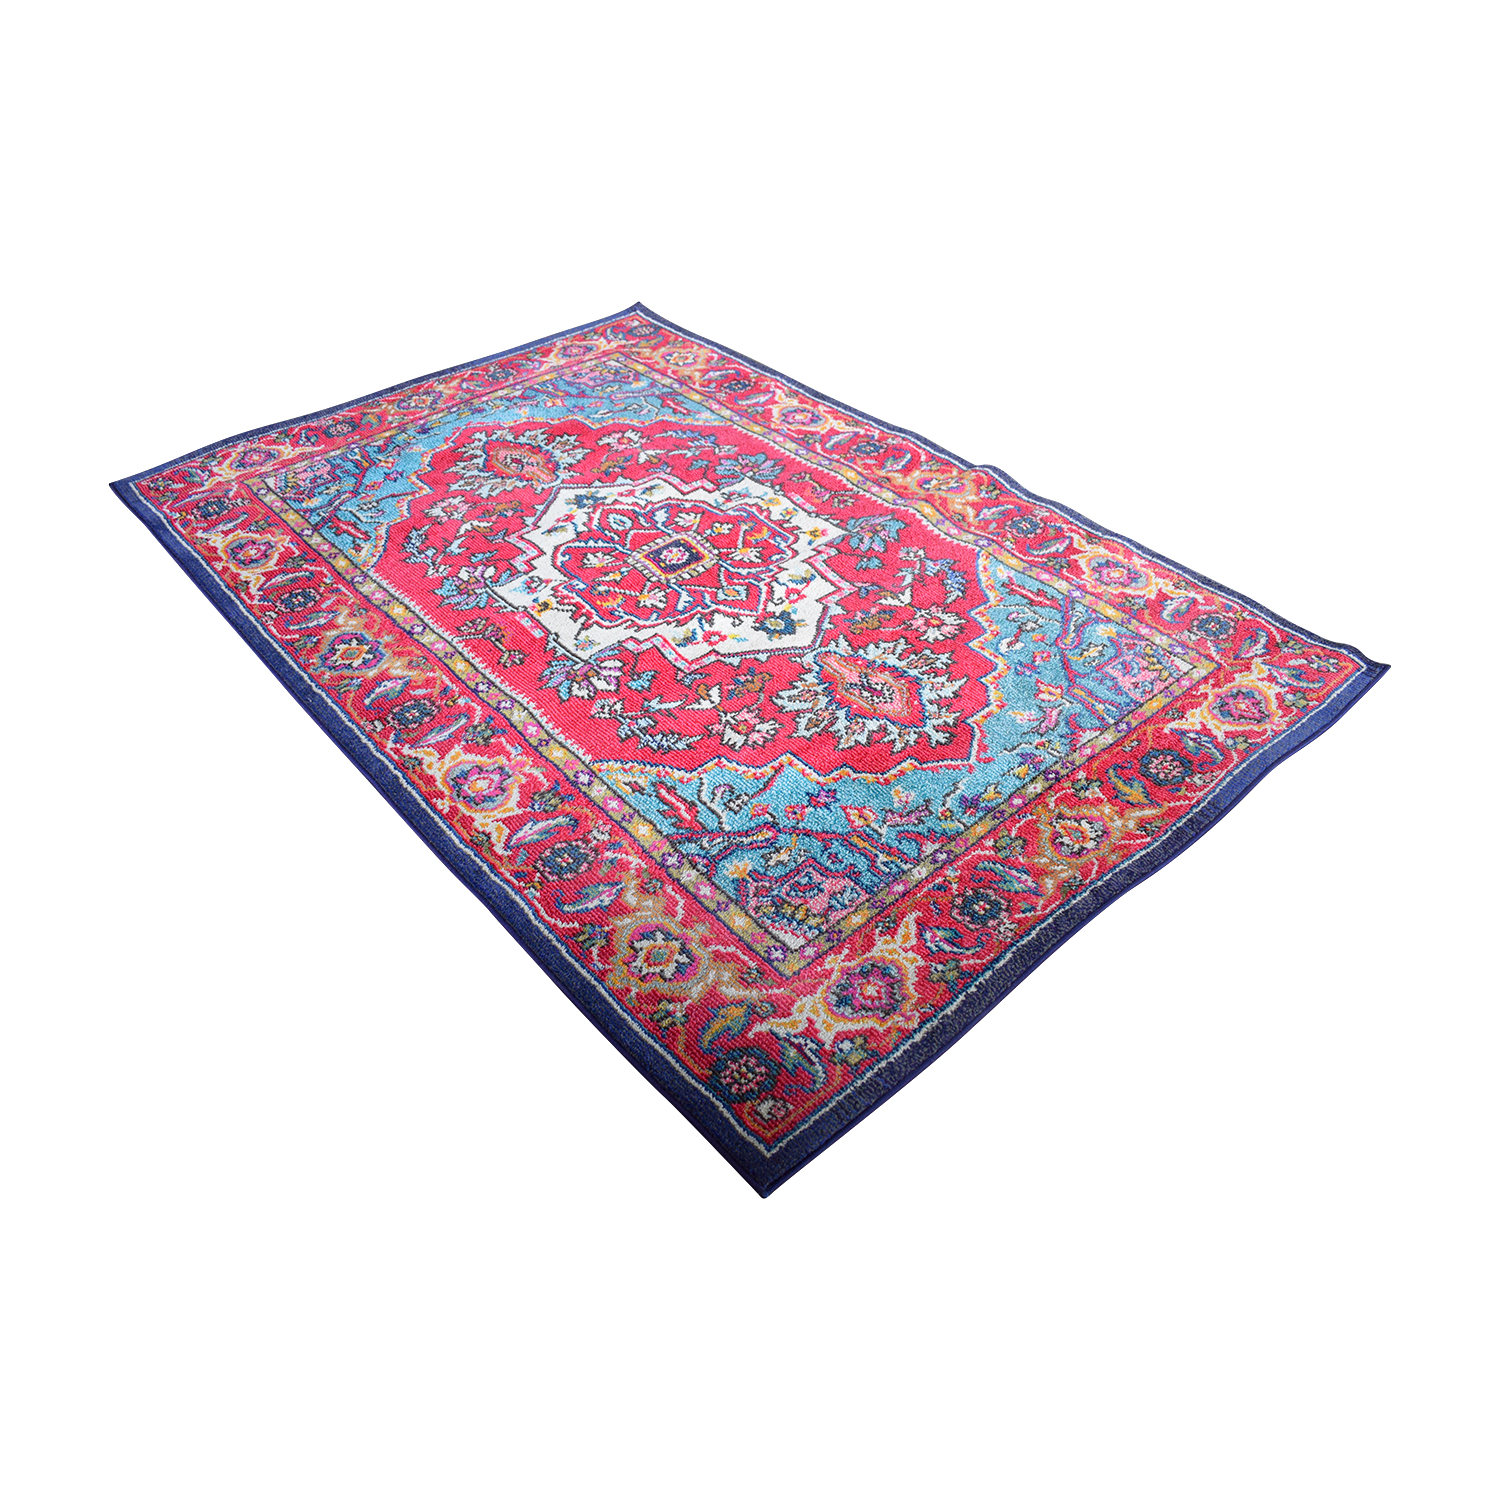 Safavieh Safavieh Monaco Oriental Bohemian Red and Turquoise Rug second hand